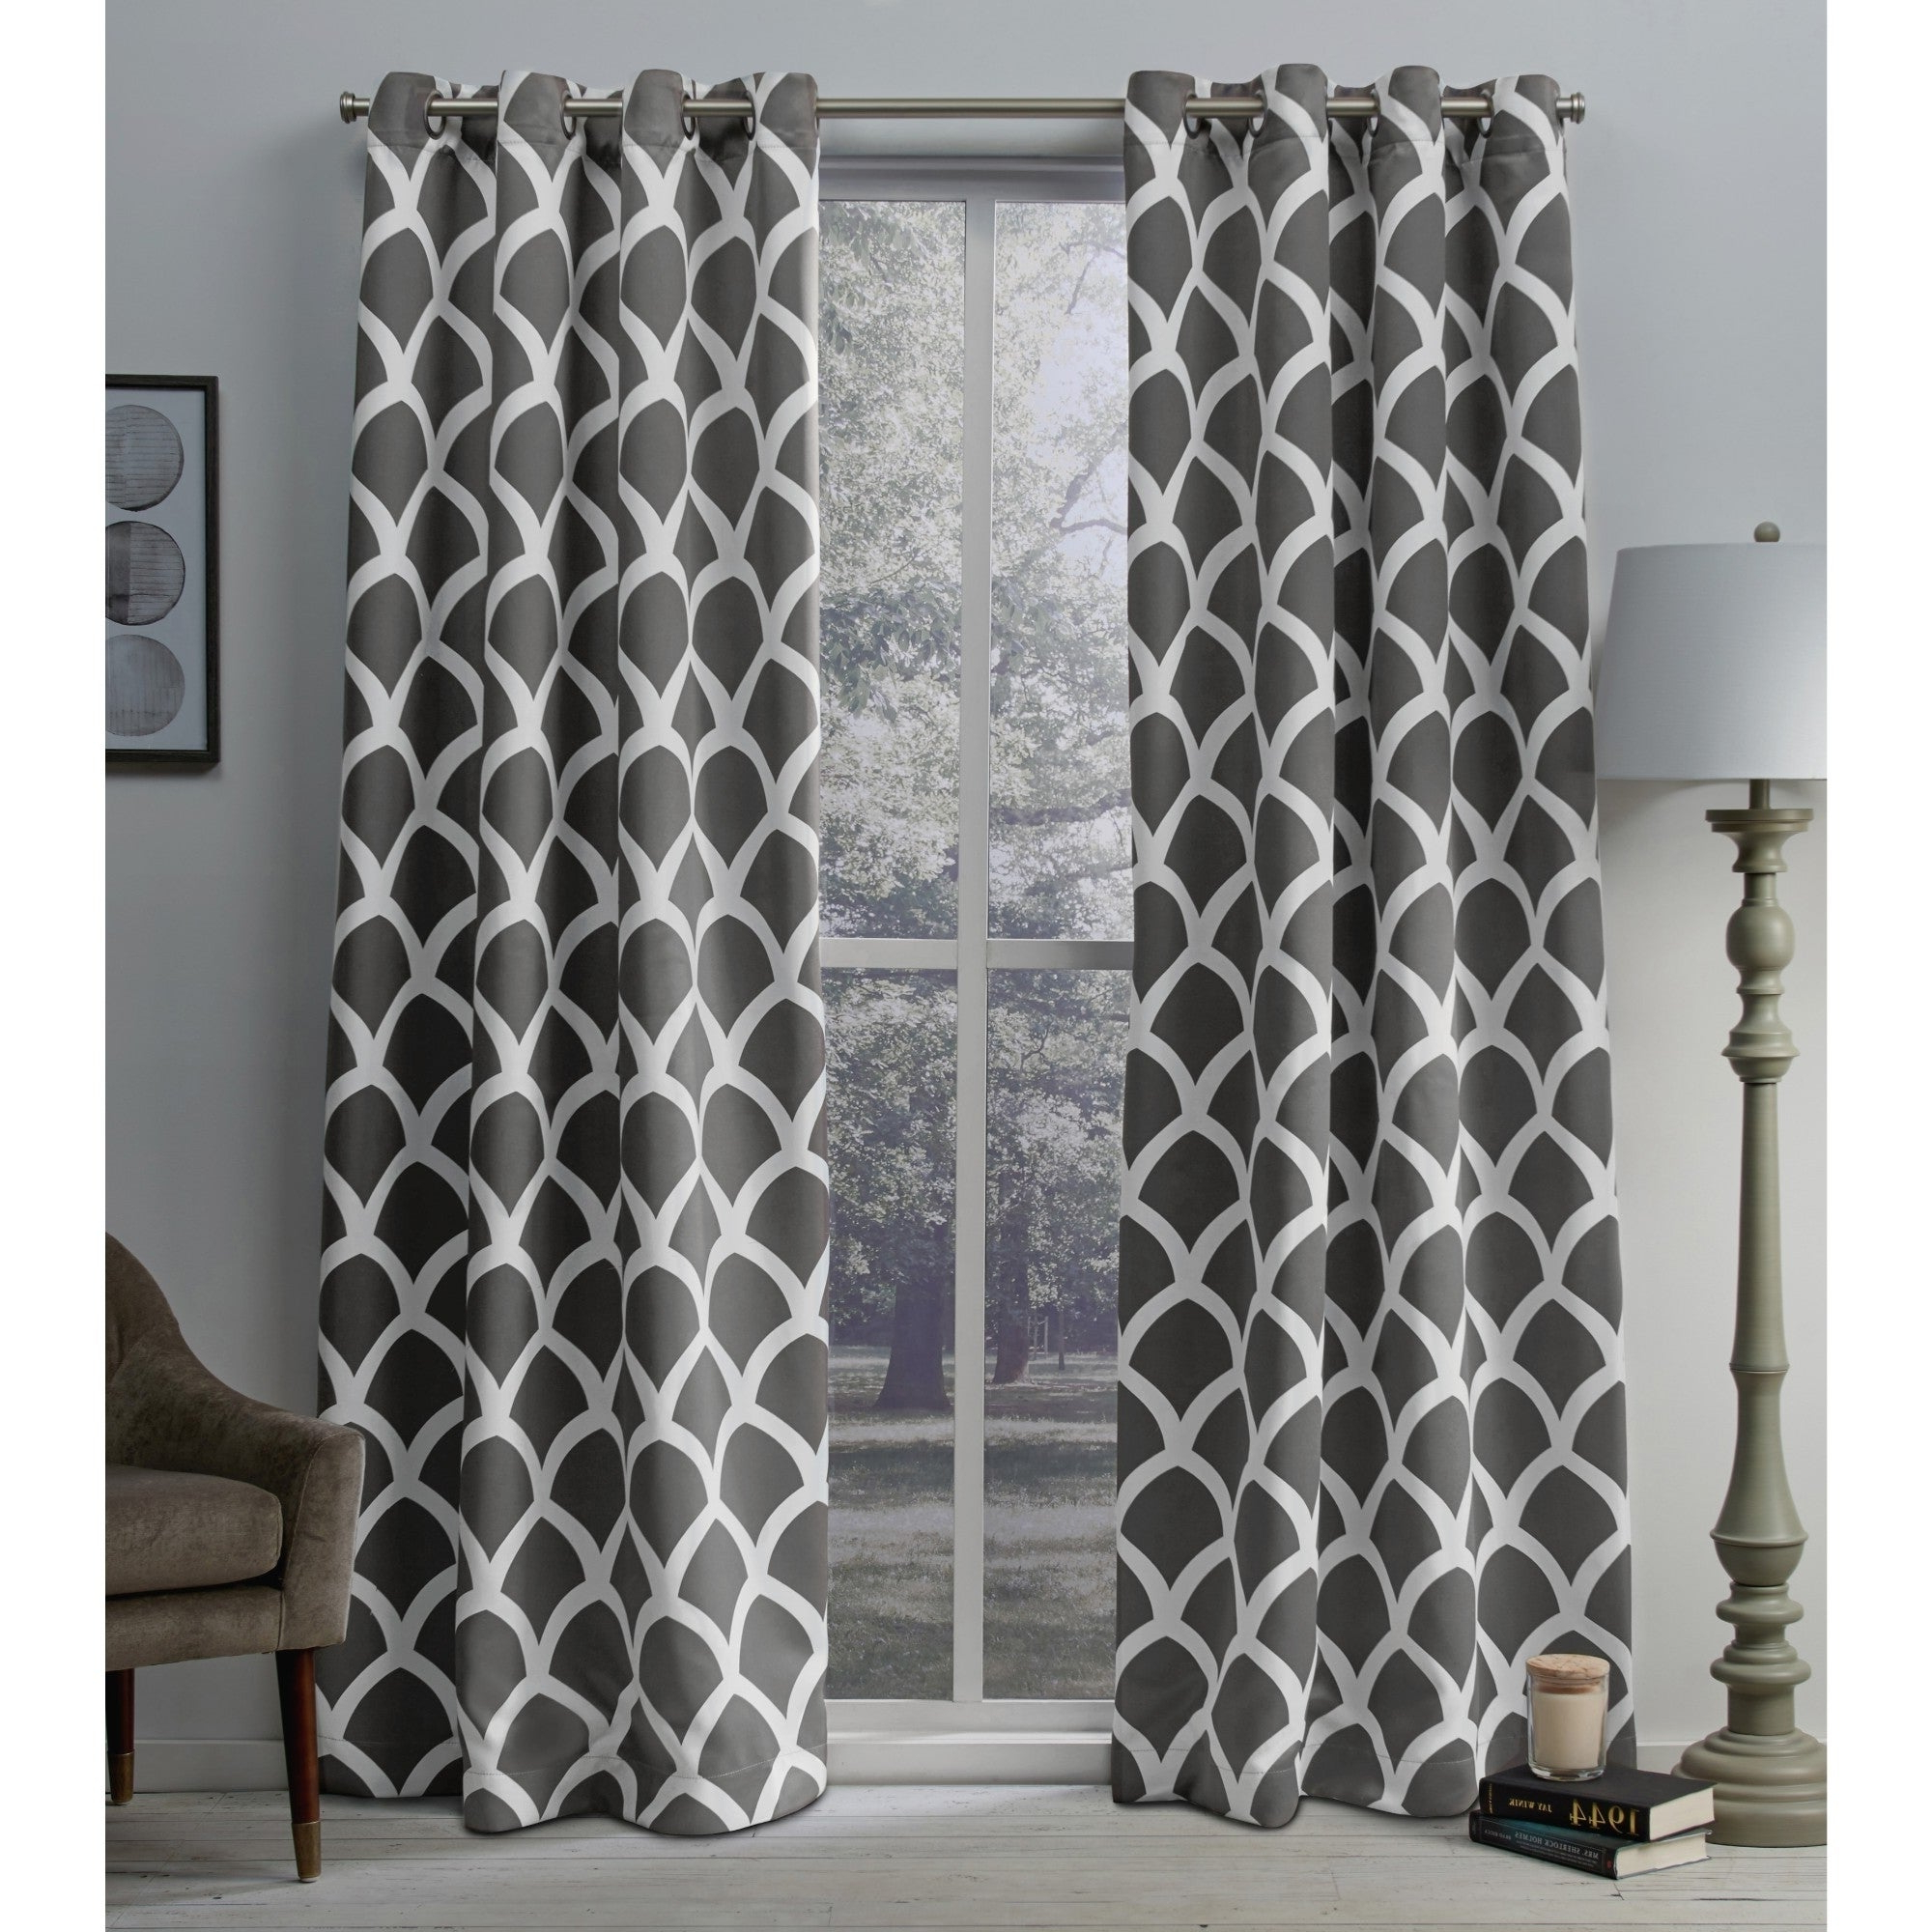 Widely Used The Curated Nomad Ames Sateen Woven Blackout Grommet Top Curtain Panel Pair In Woven Blackout Grommet Top Curtain Panel Pairs (View 5 of 20)